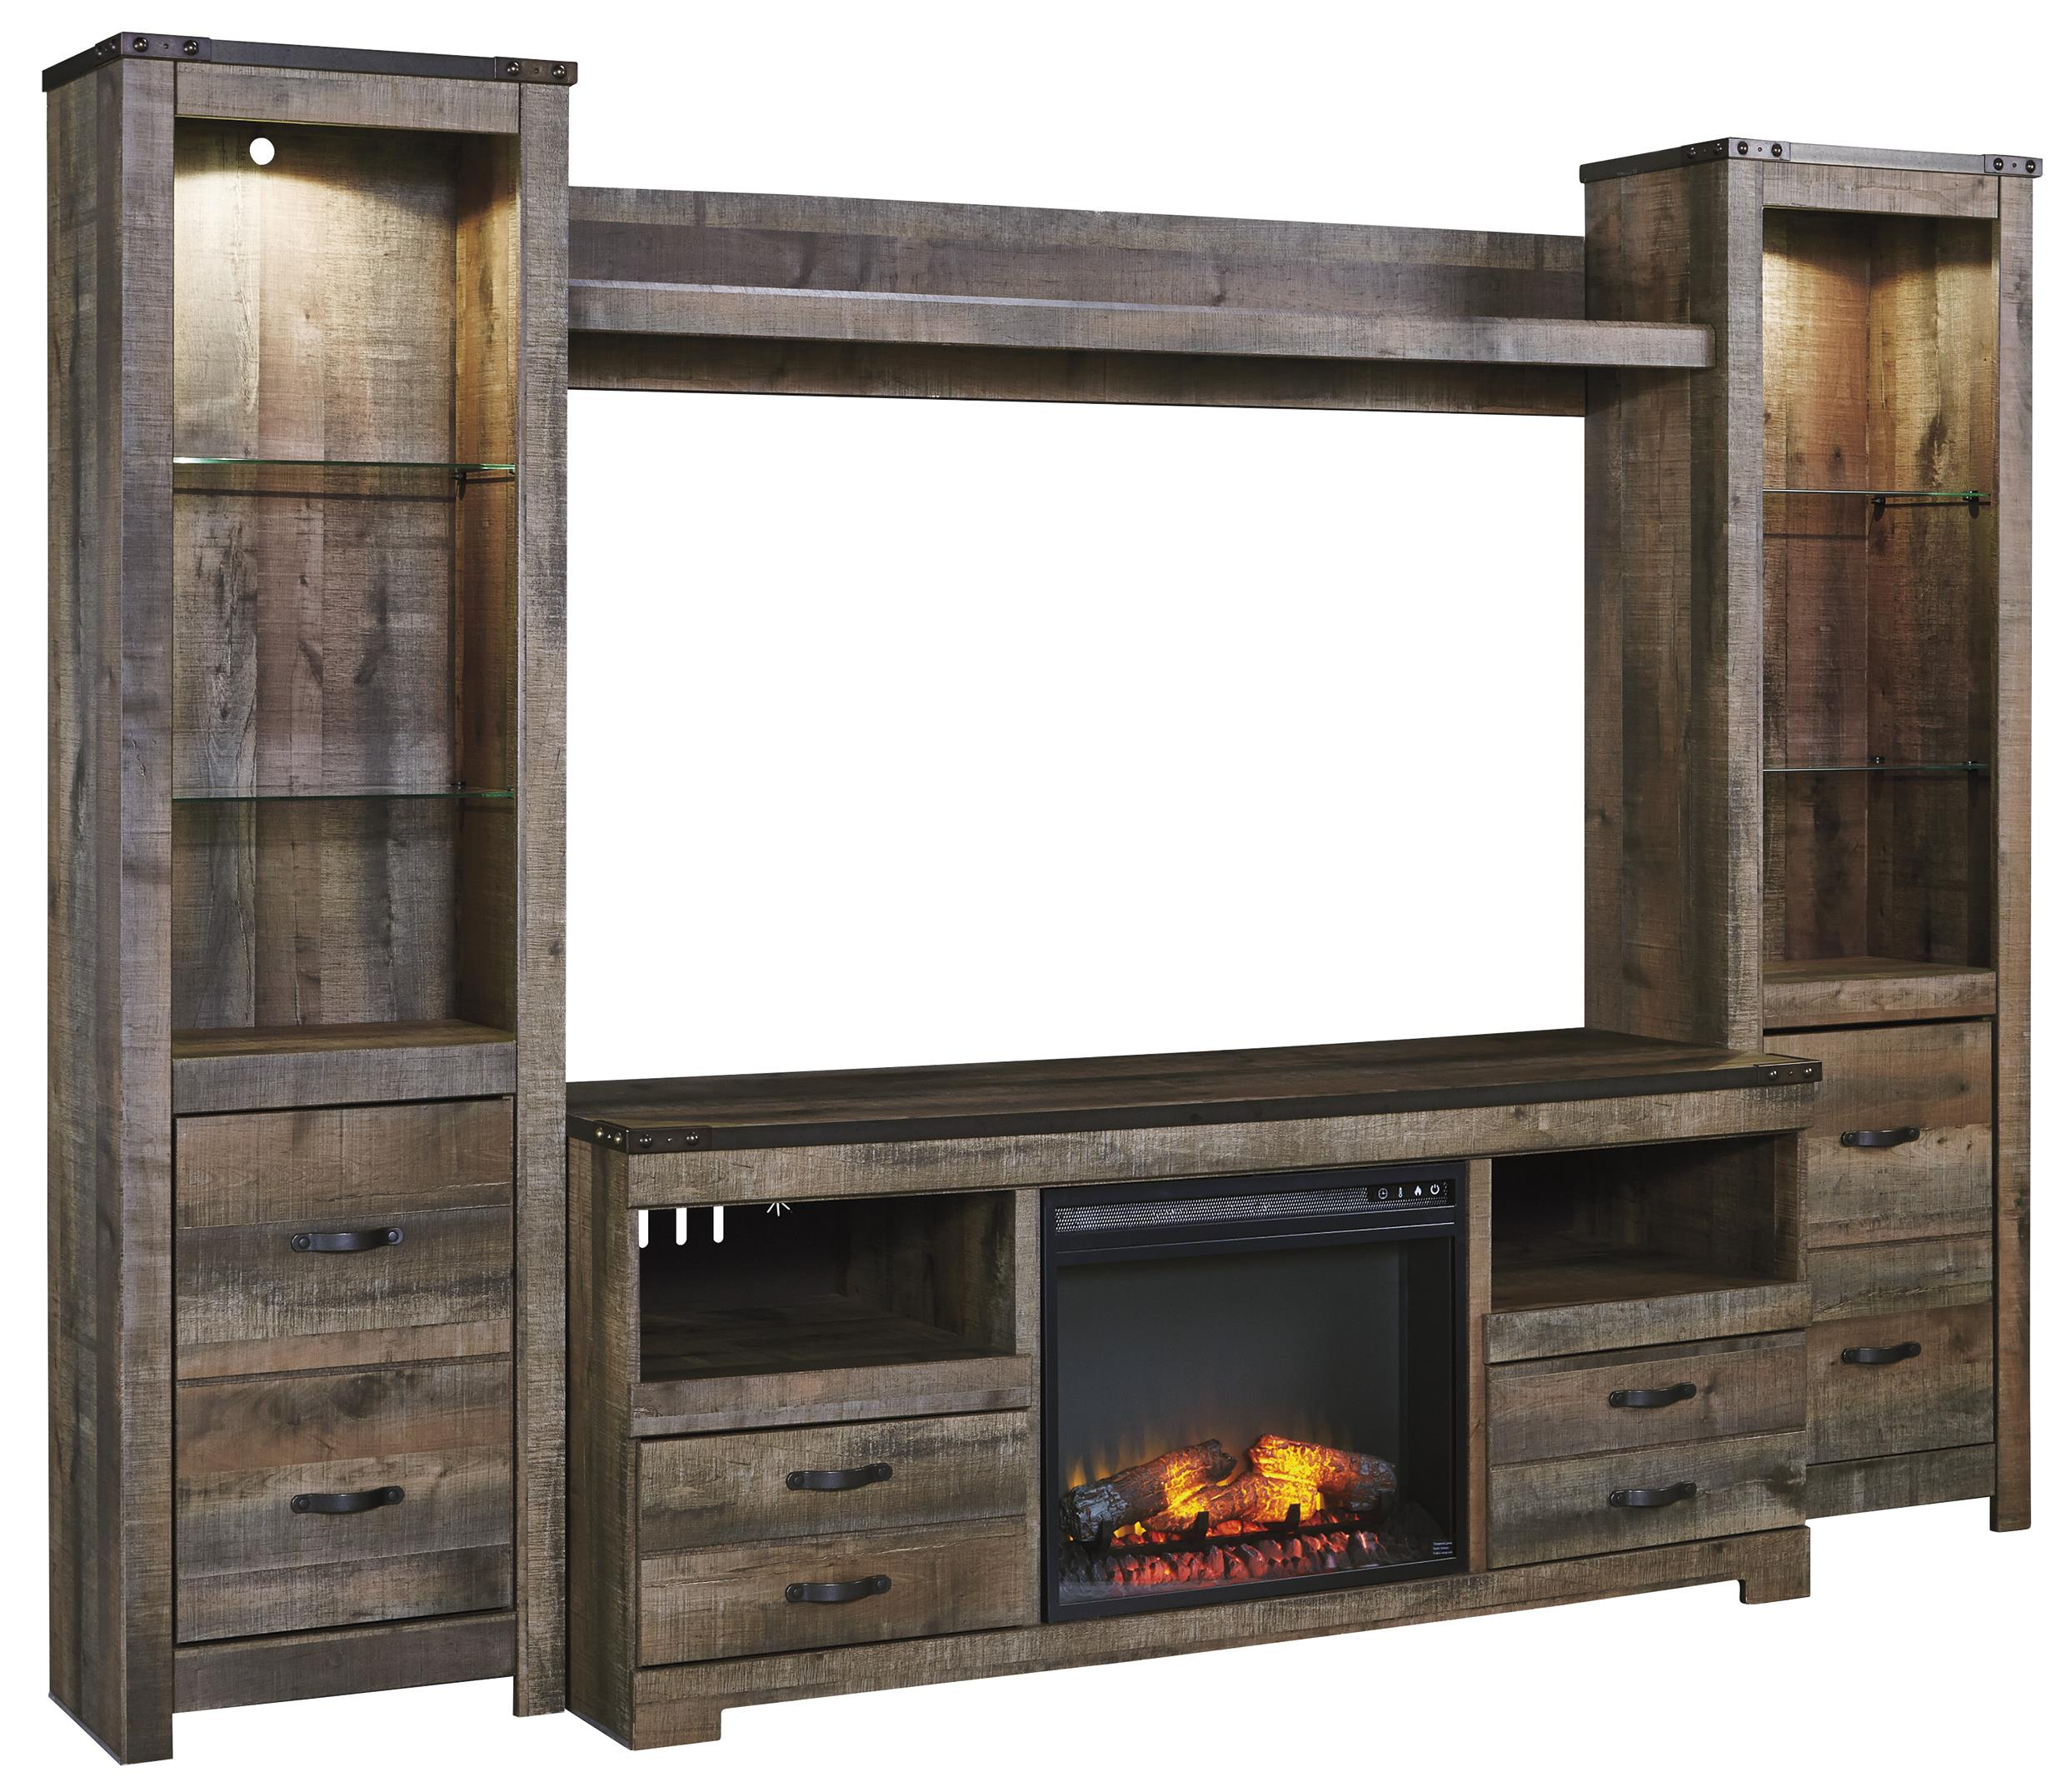 Large Wall Units For Living Room Urban Rustic Rustic Large Tv Stand W Fireplace Insert 2 Tall Piers Bridge By Signature Design By Ashley At Rotmans